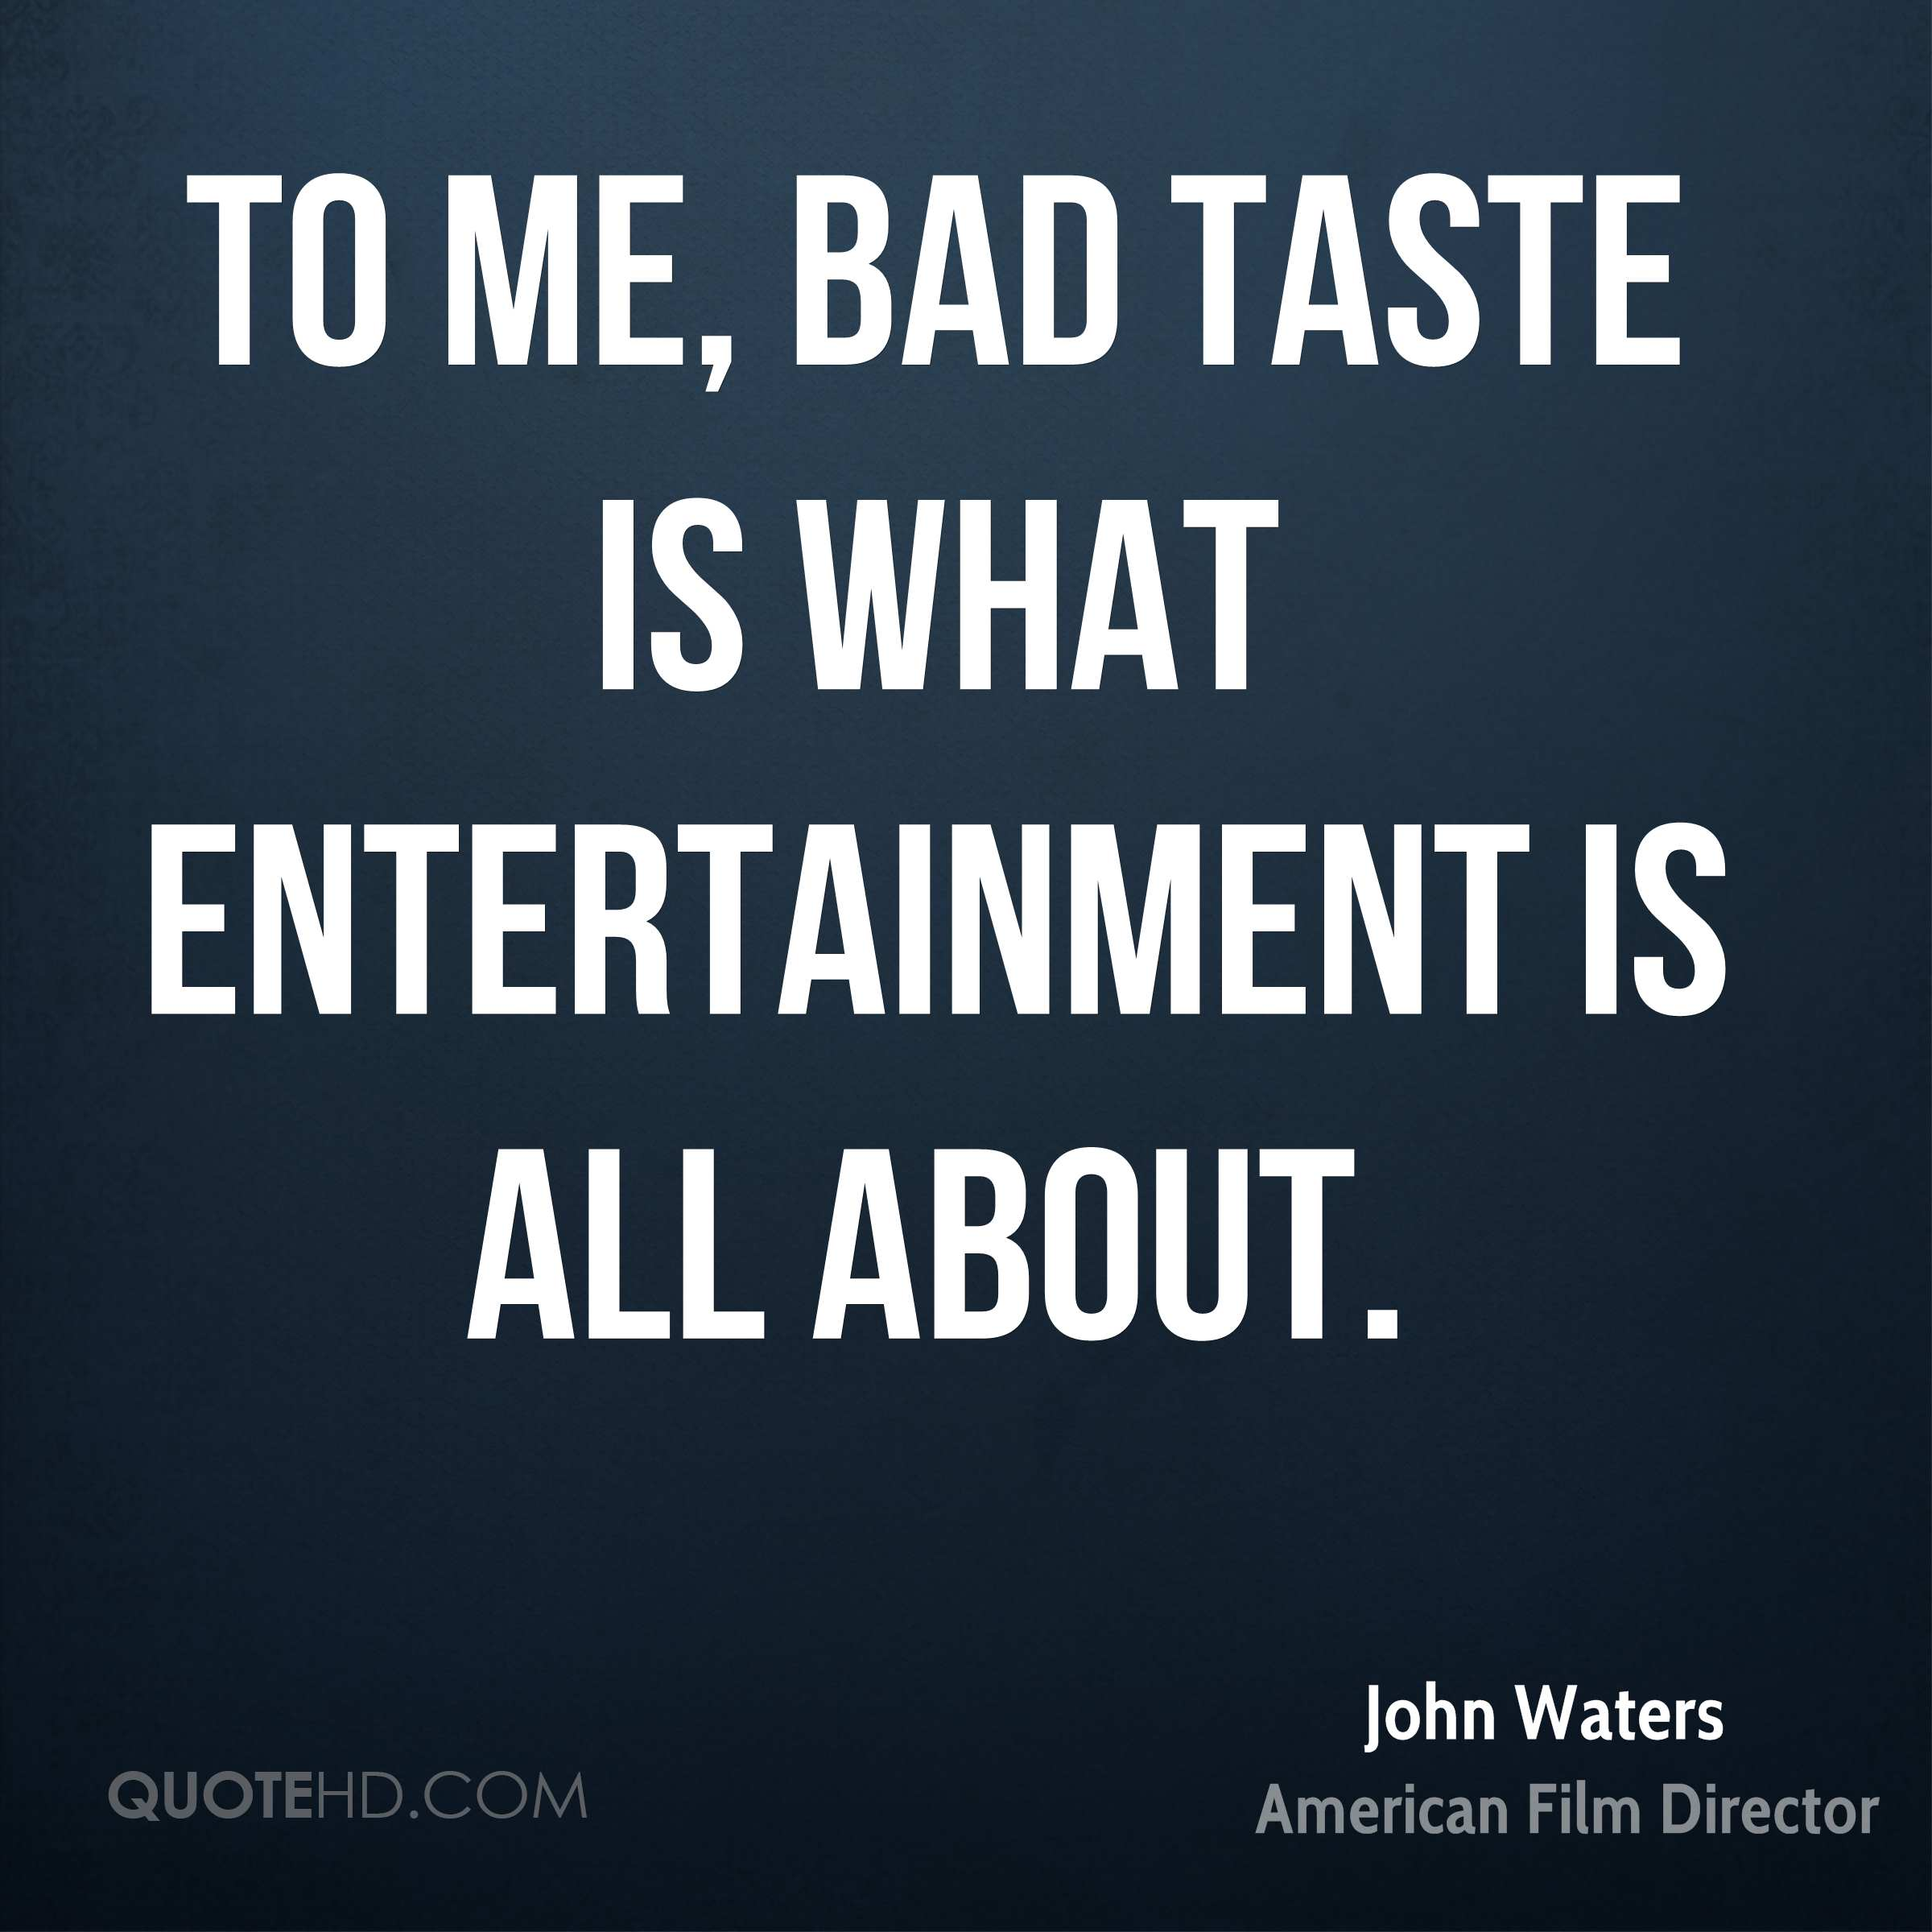 To me, bad taste is what entertainment is all about.